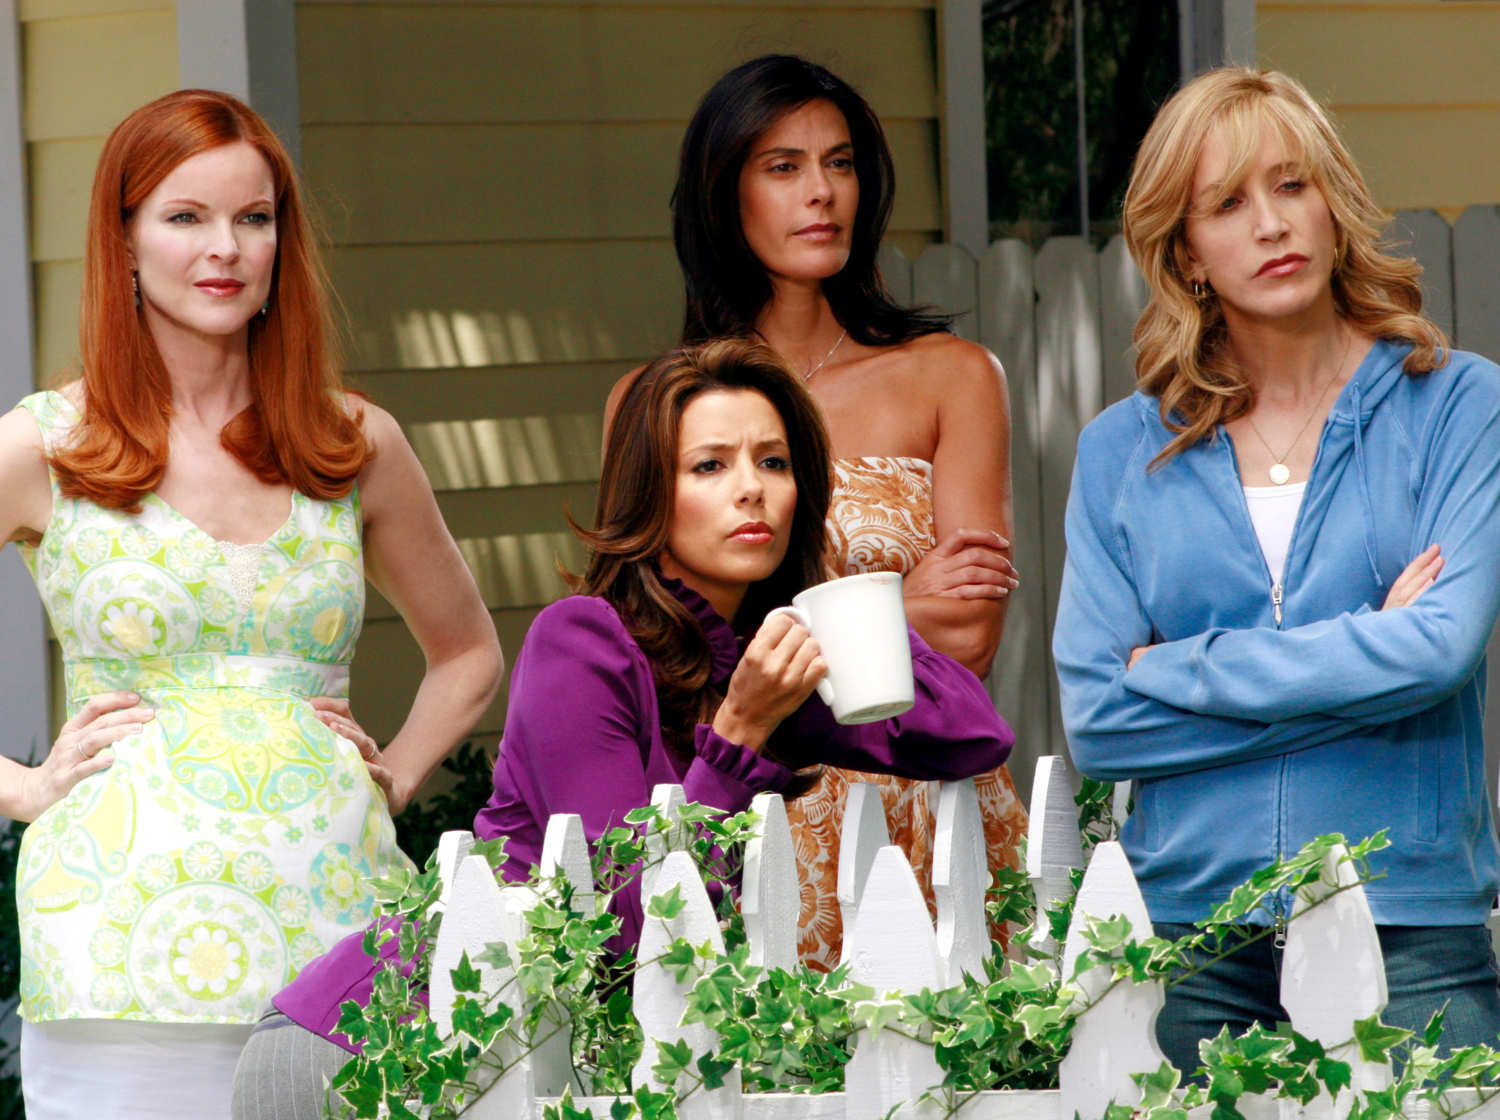 Teri Hatcher attrice in Resurrecting the Champ + il promo della quarta stagione di Desperate Housewives